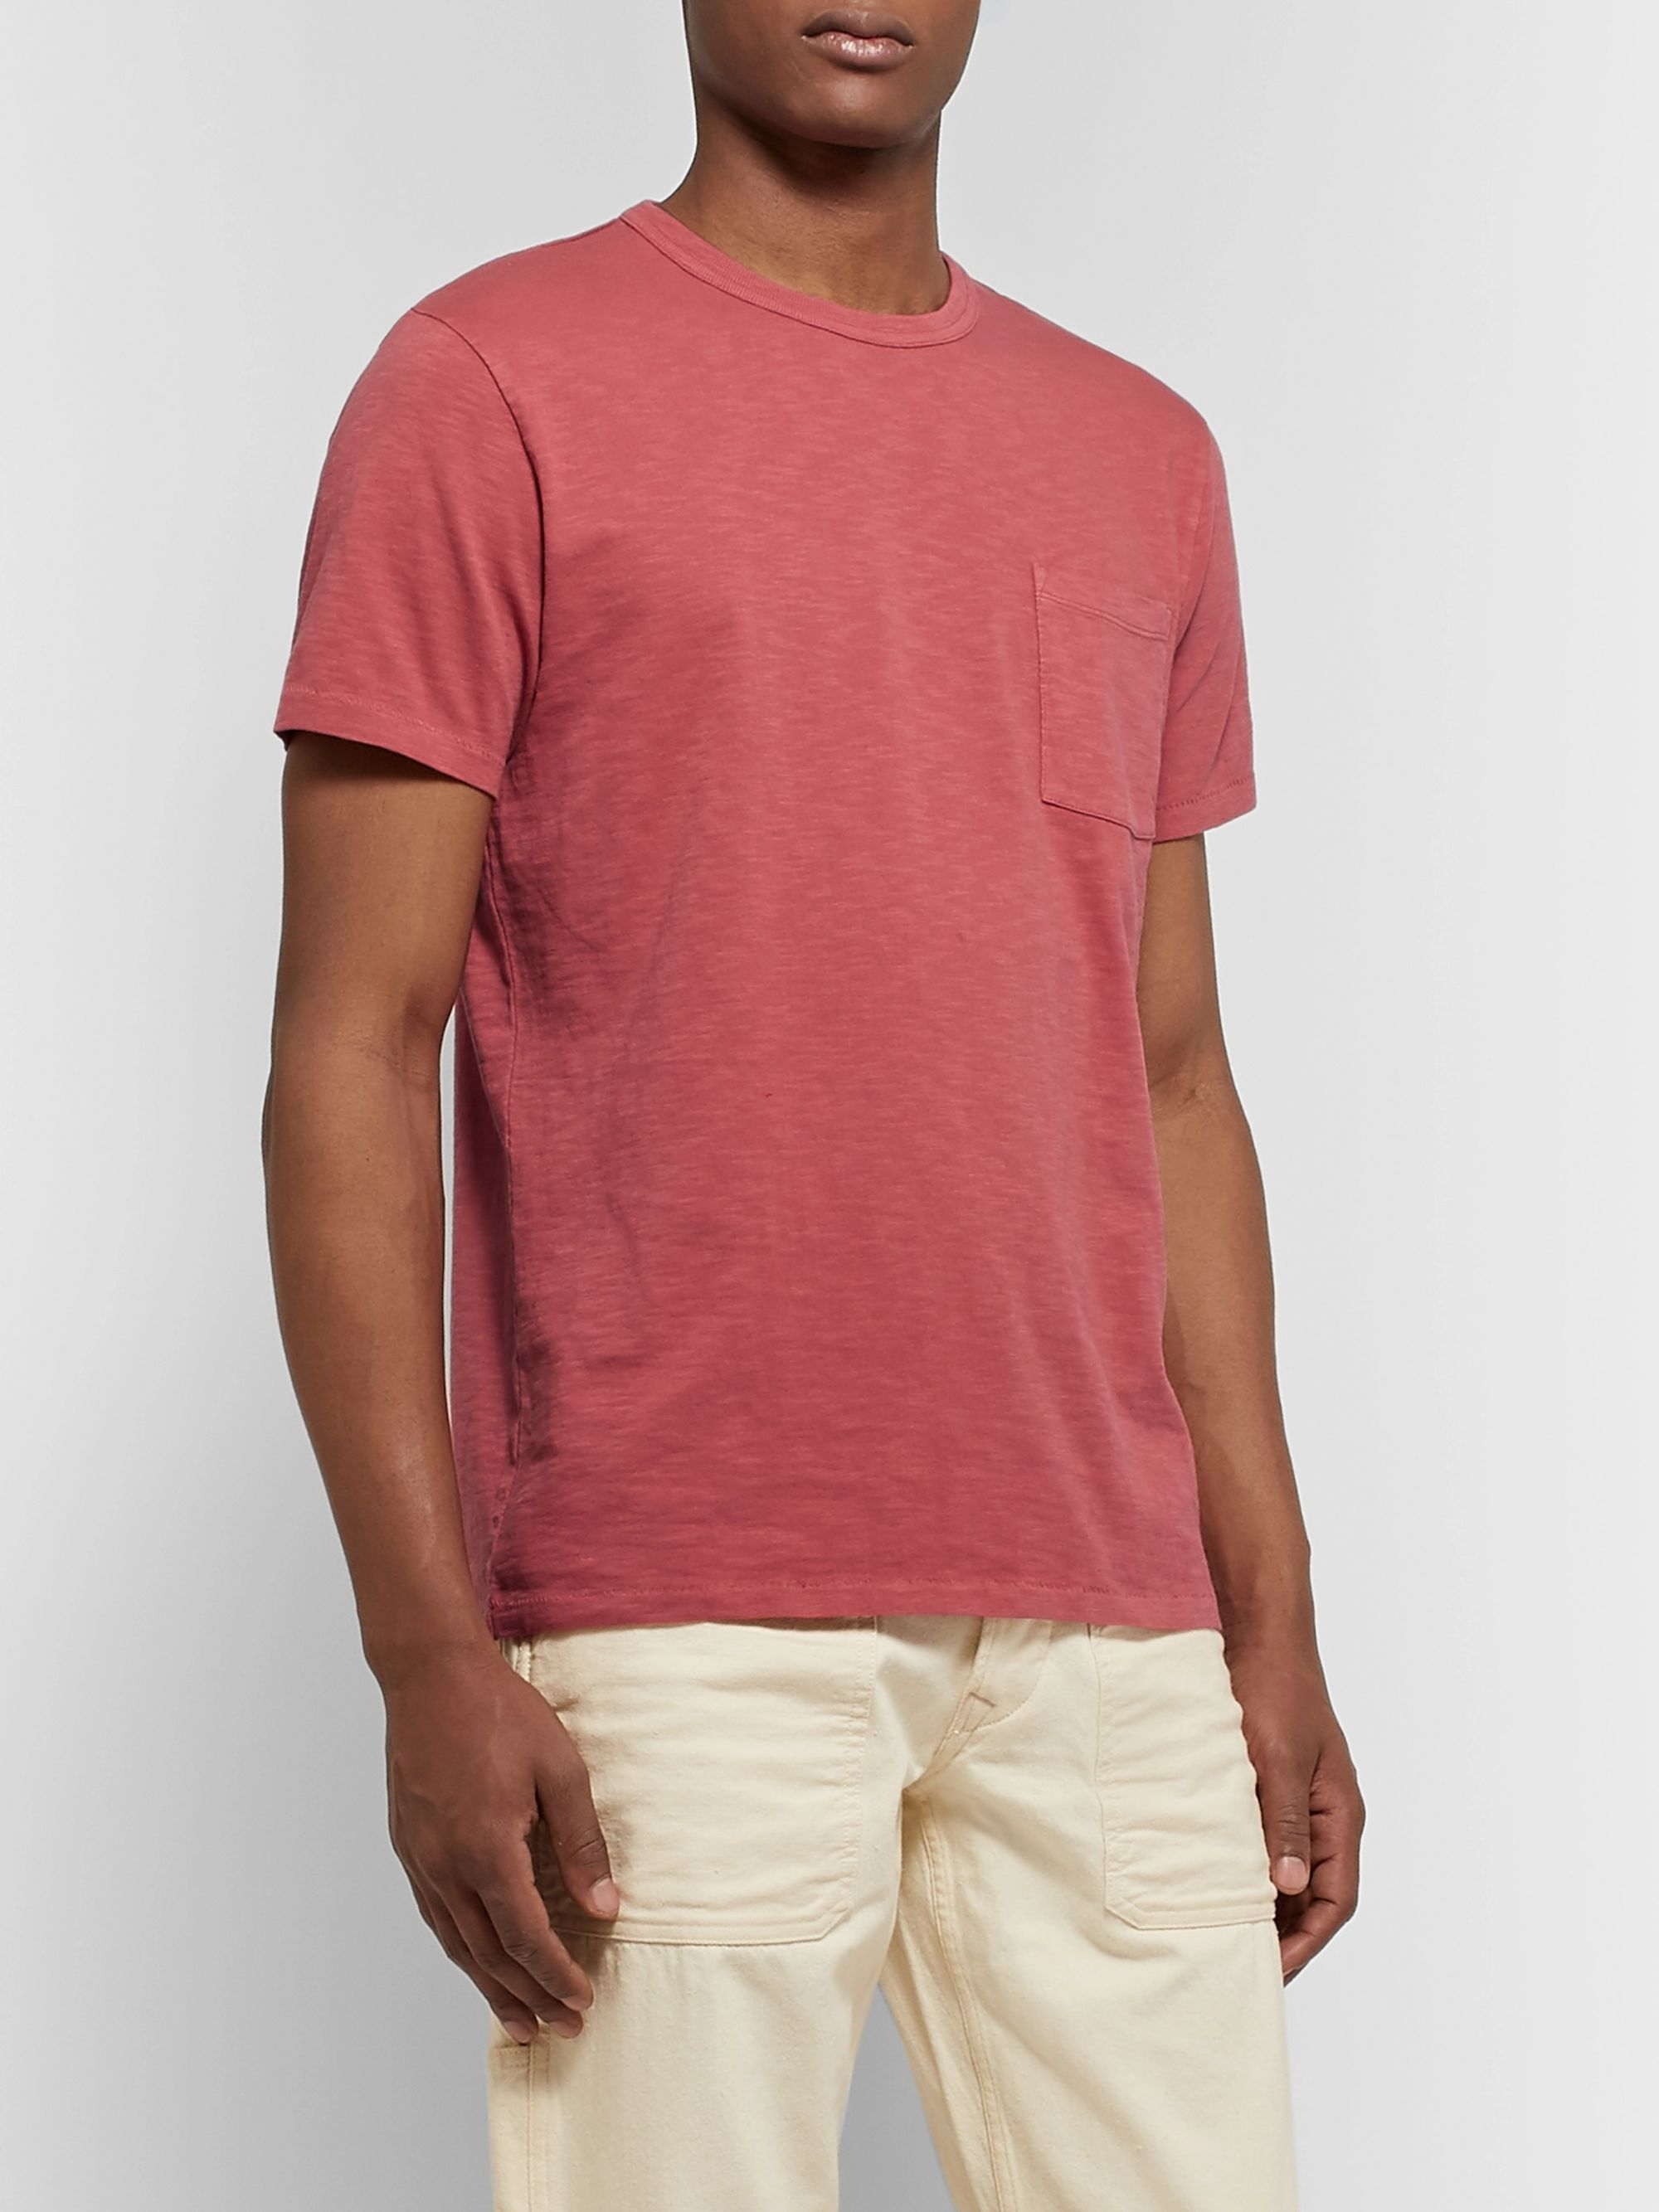 J.Crew Garment-Dyed Slub Cotton-Jersey T-Shirt